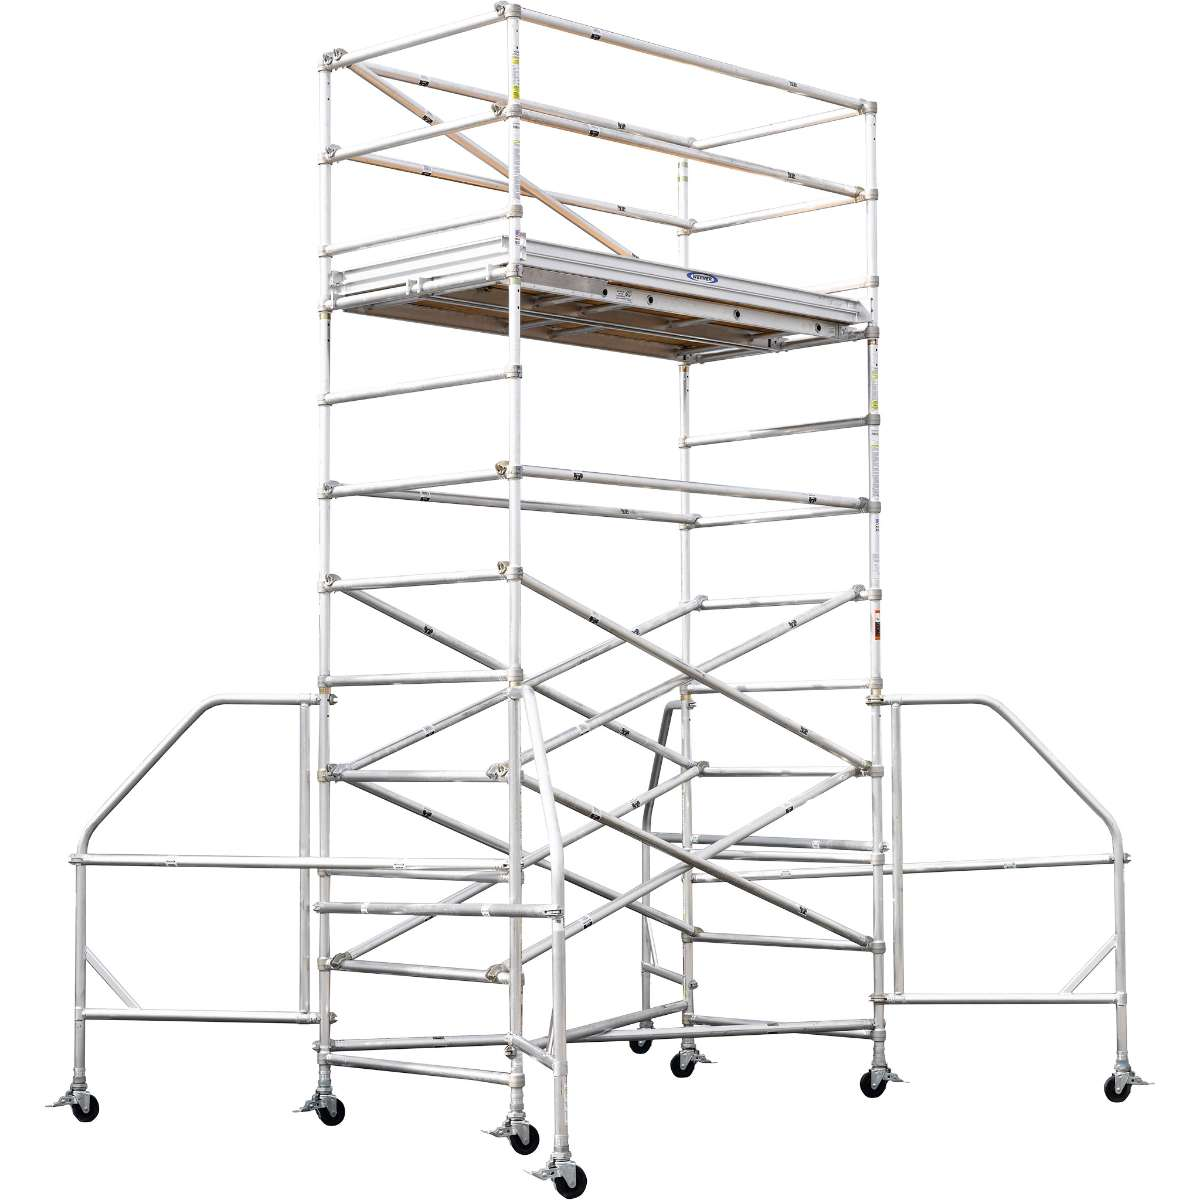 Werner Wide Span Scaffold Tower